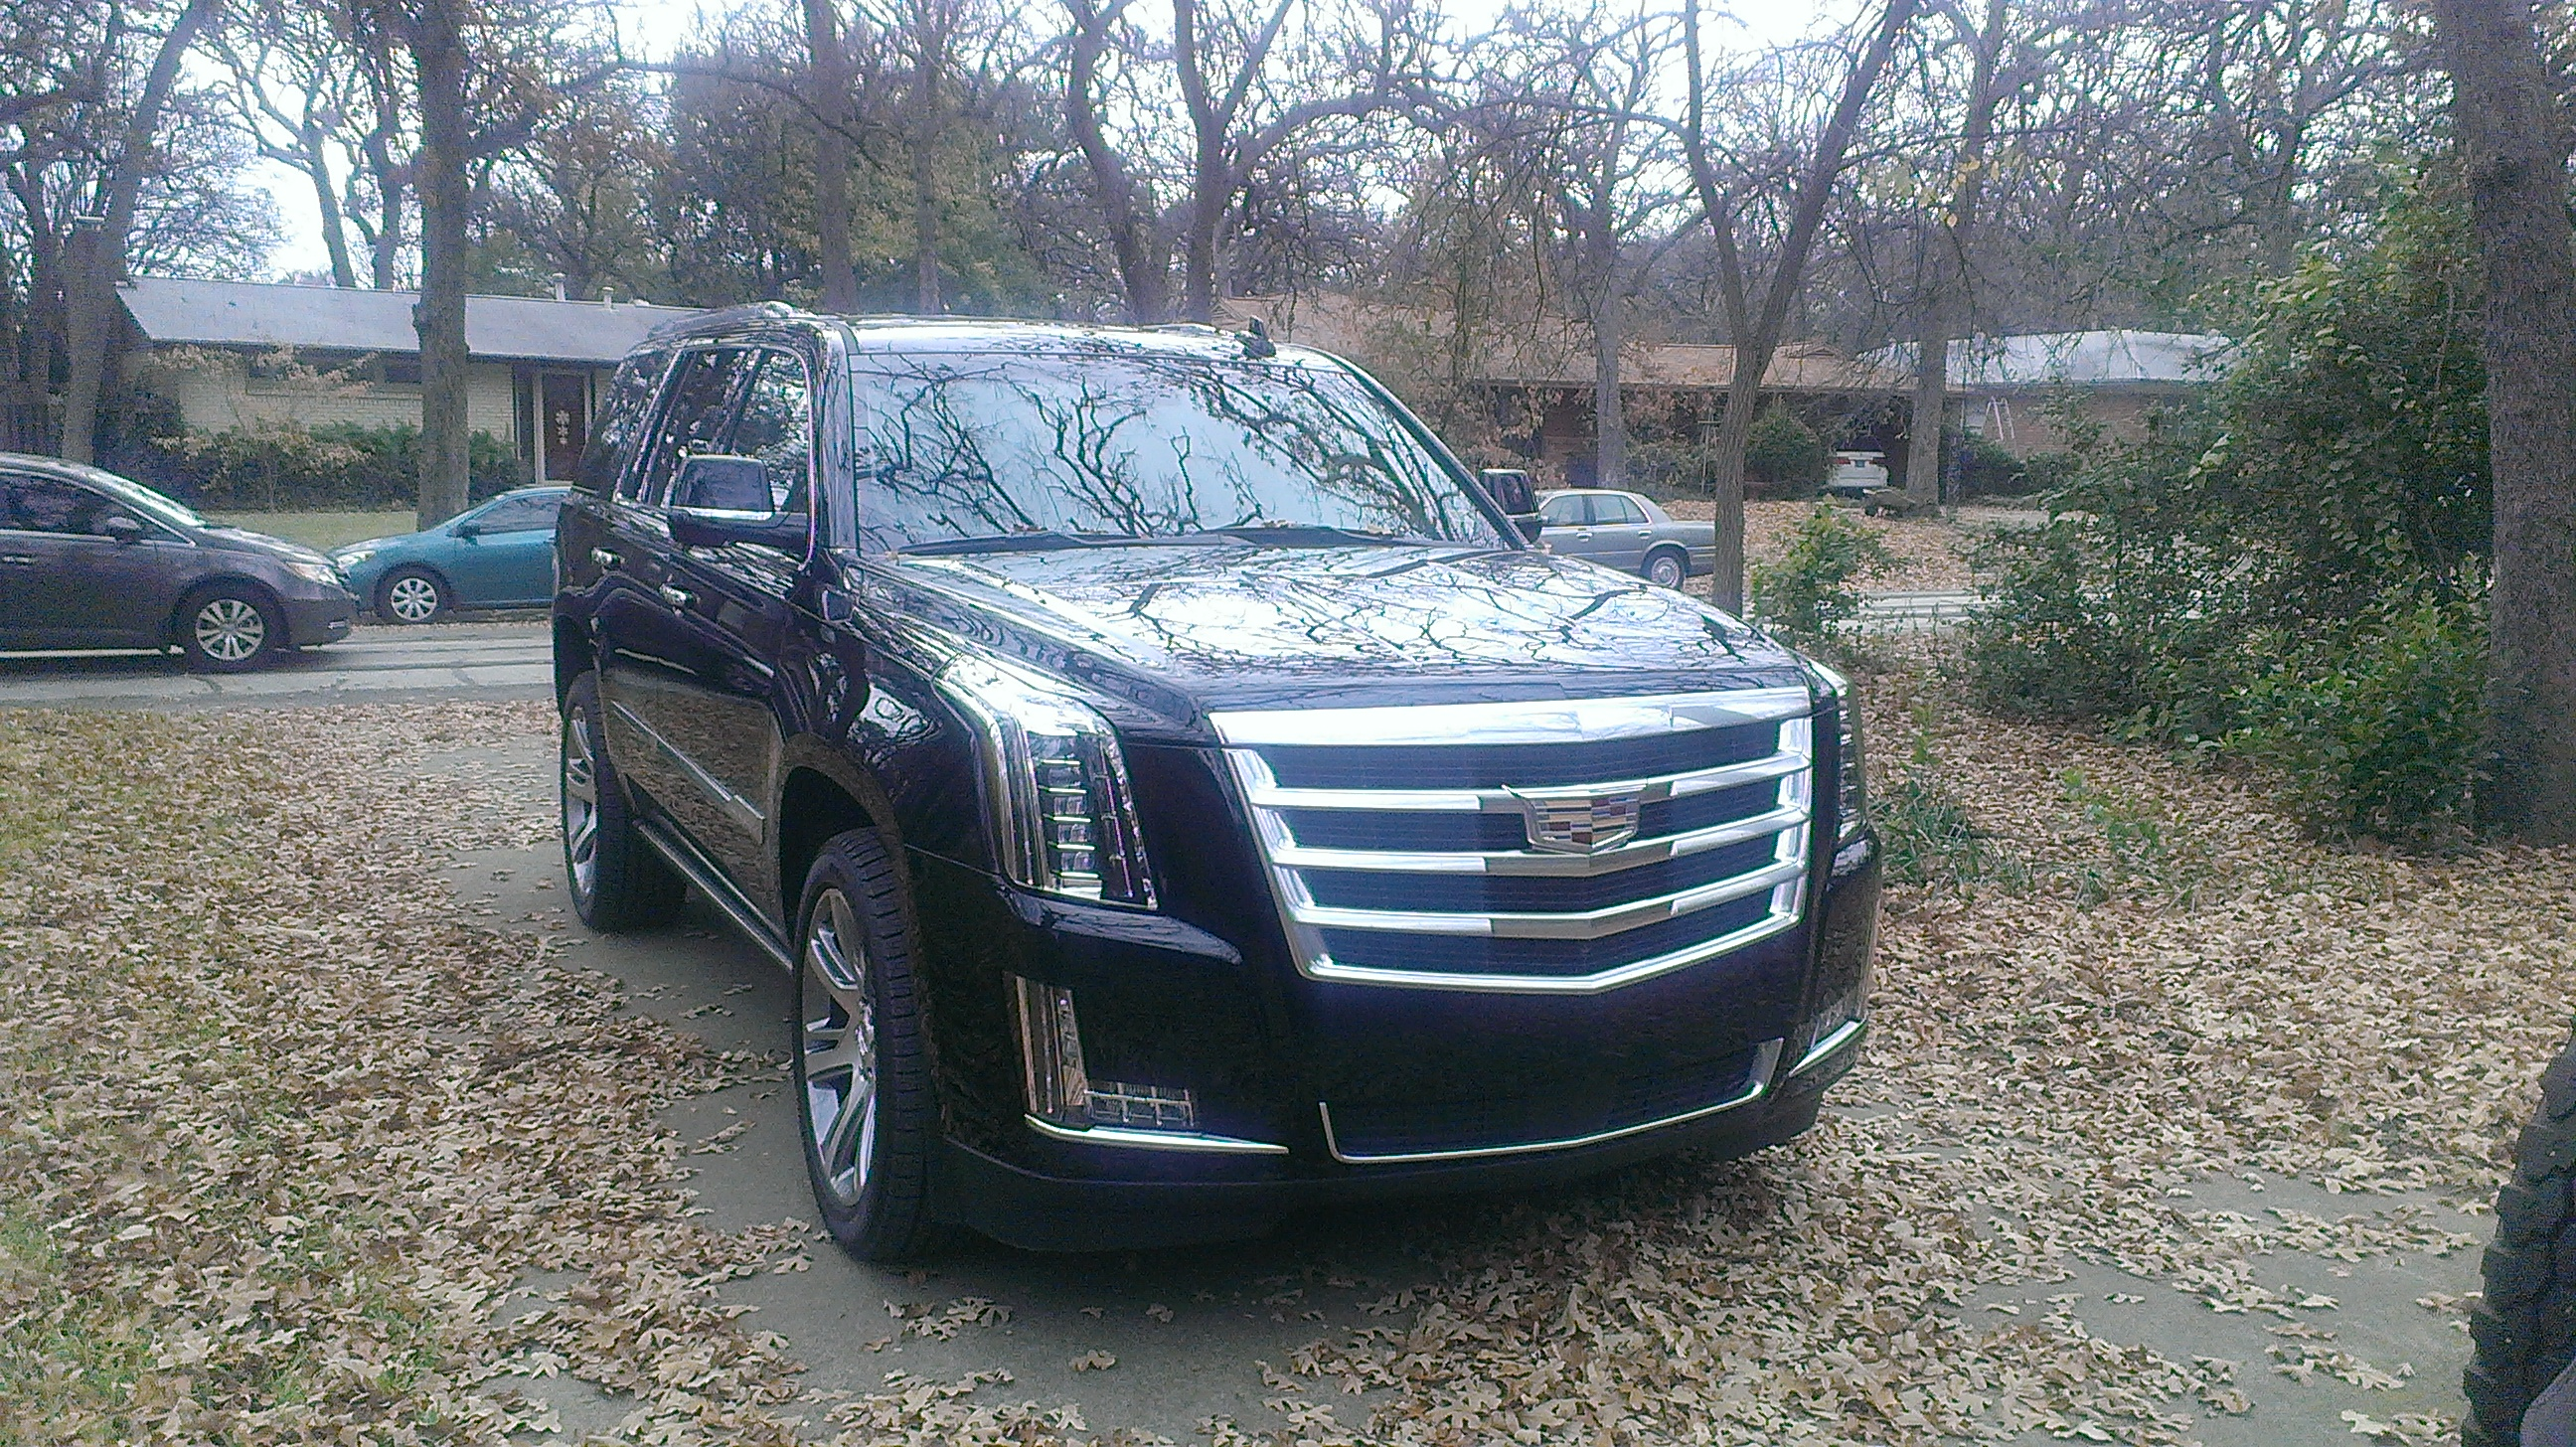 The 2015 Cadillac Escalade S Redesign Is Set To Spoil Any Driver